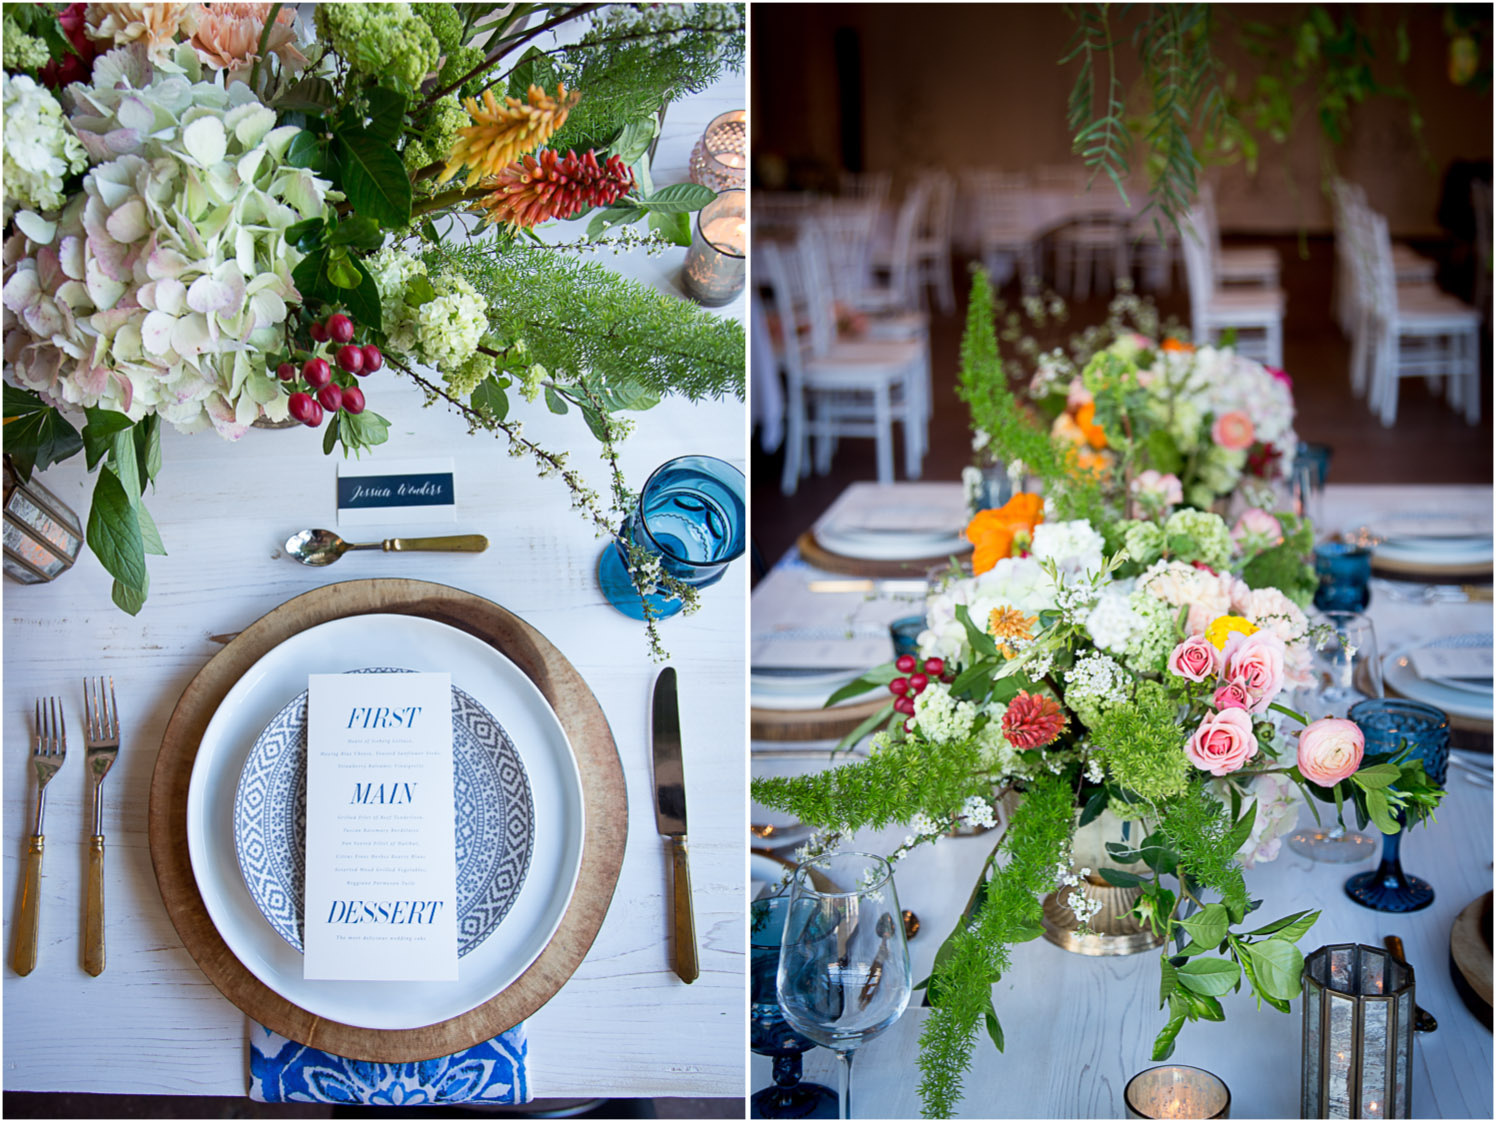 10-wedding-reception-head-table-wooden-charger-plates-gold-flatware-blue-type-menu-pink-hydrangea-mahonen-photography.jpg